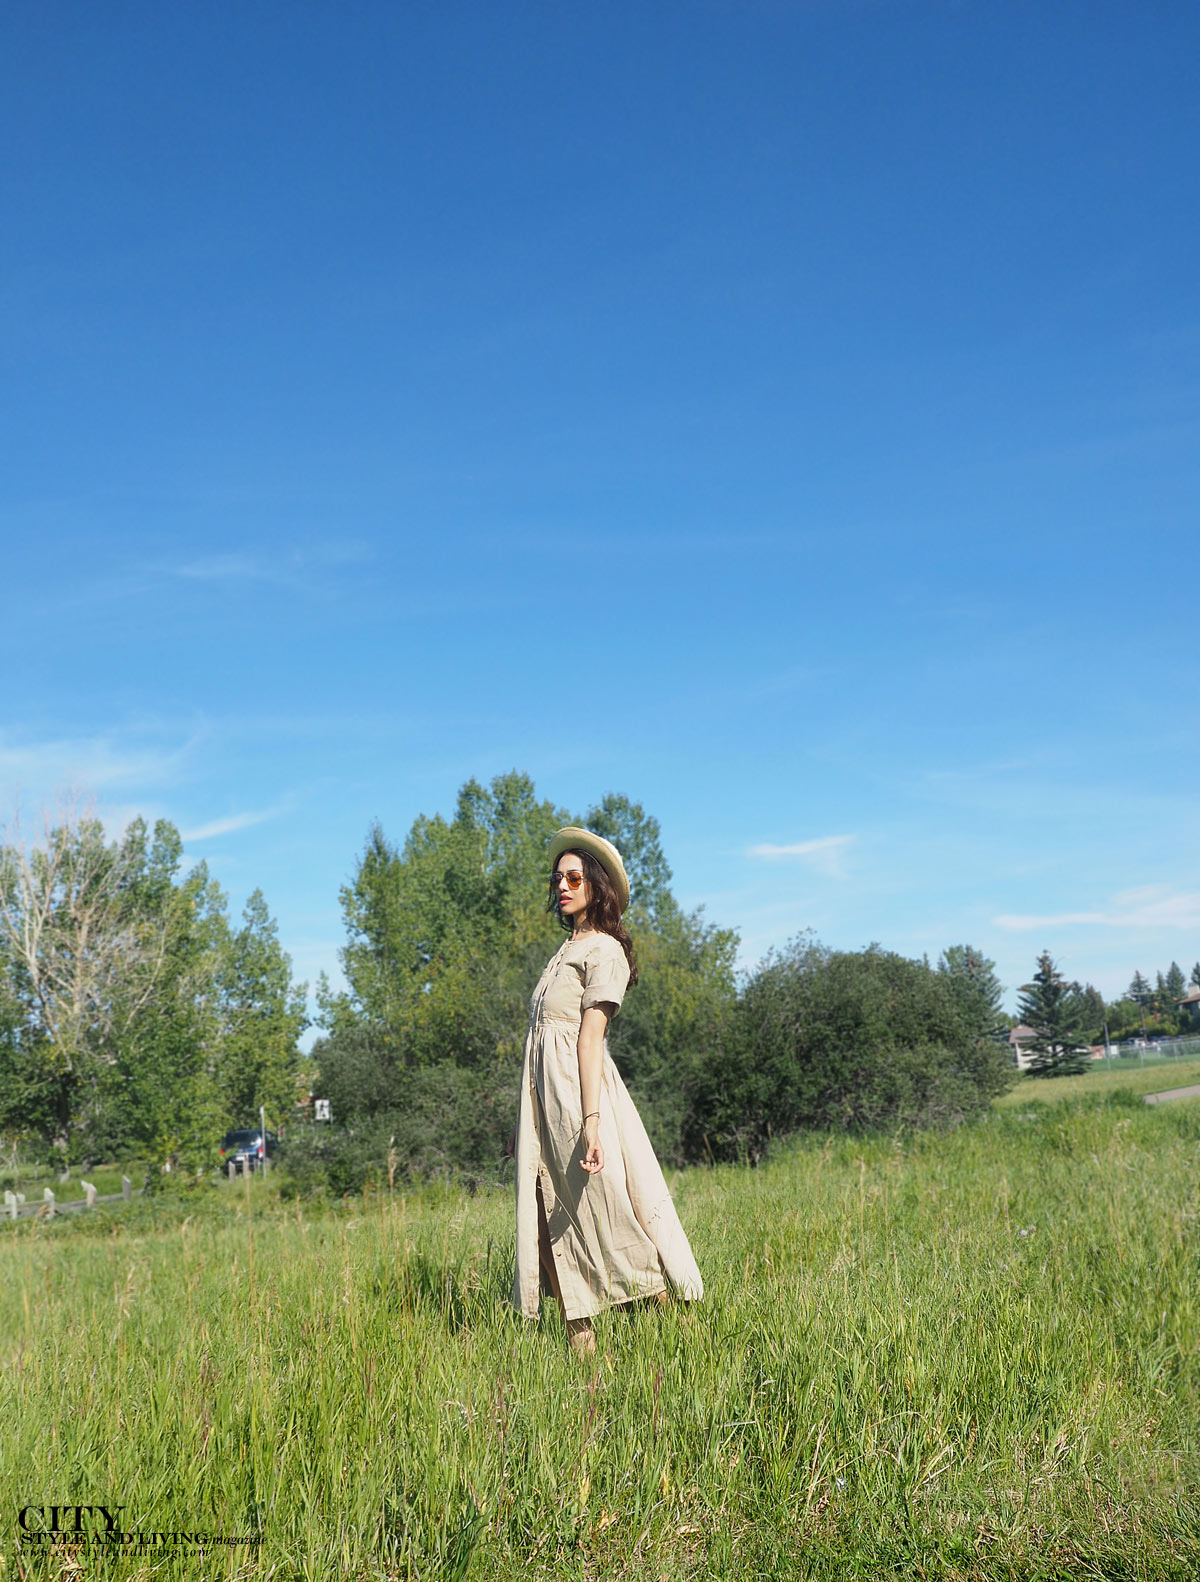 The Editors Notebook calgary fashion blogger wearing a khaki dress and straw hat at glenmore walking in field